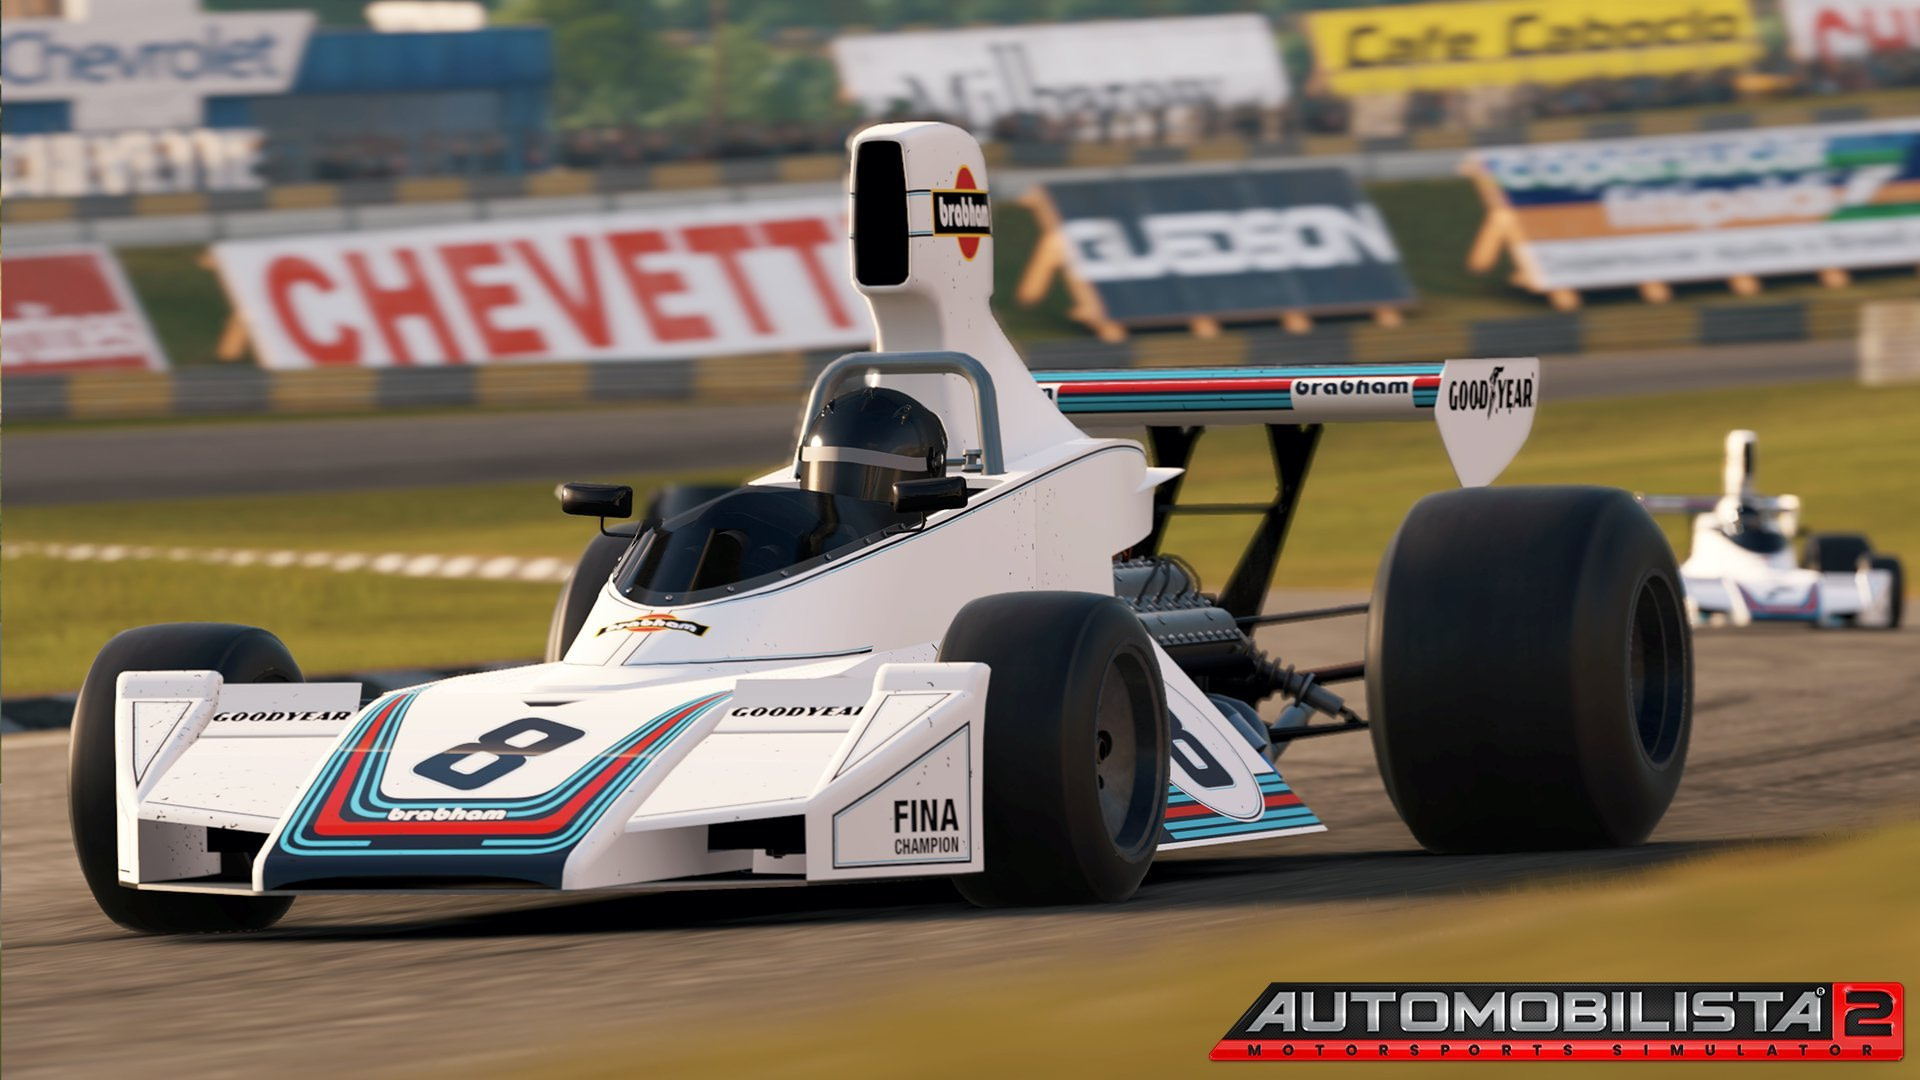 October 18th 2020 – Formula 70's – Automobilista 2 Event